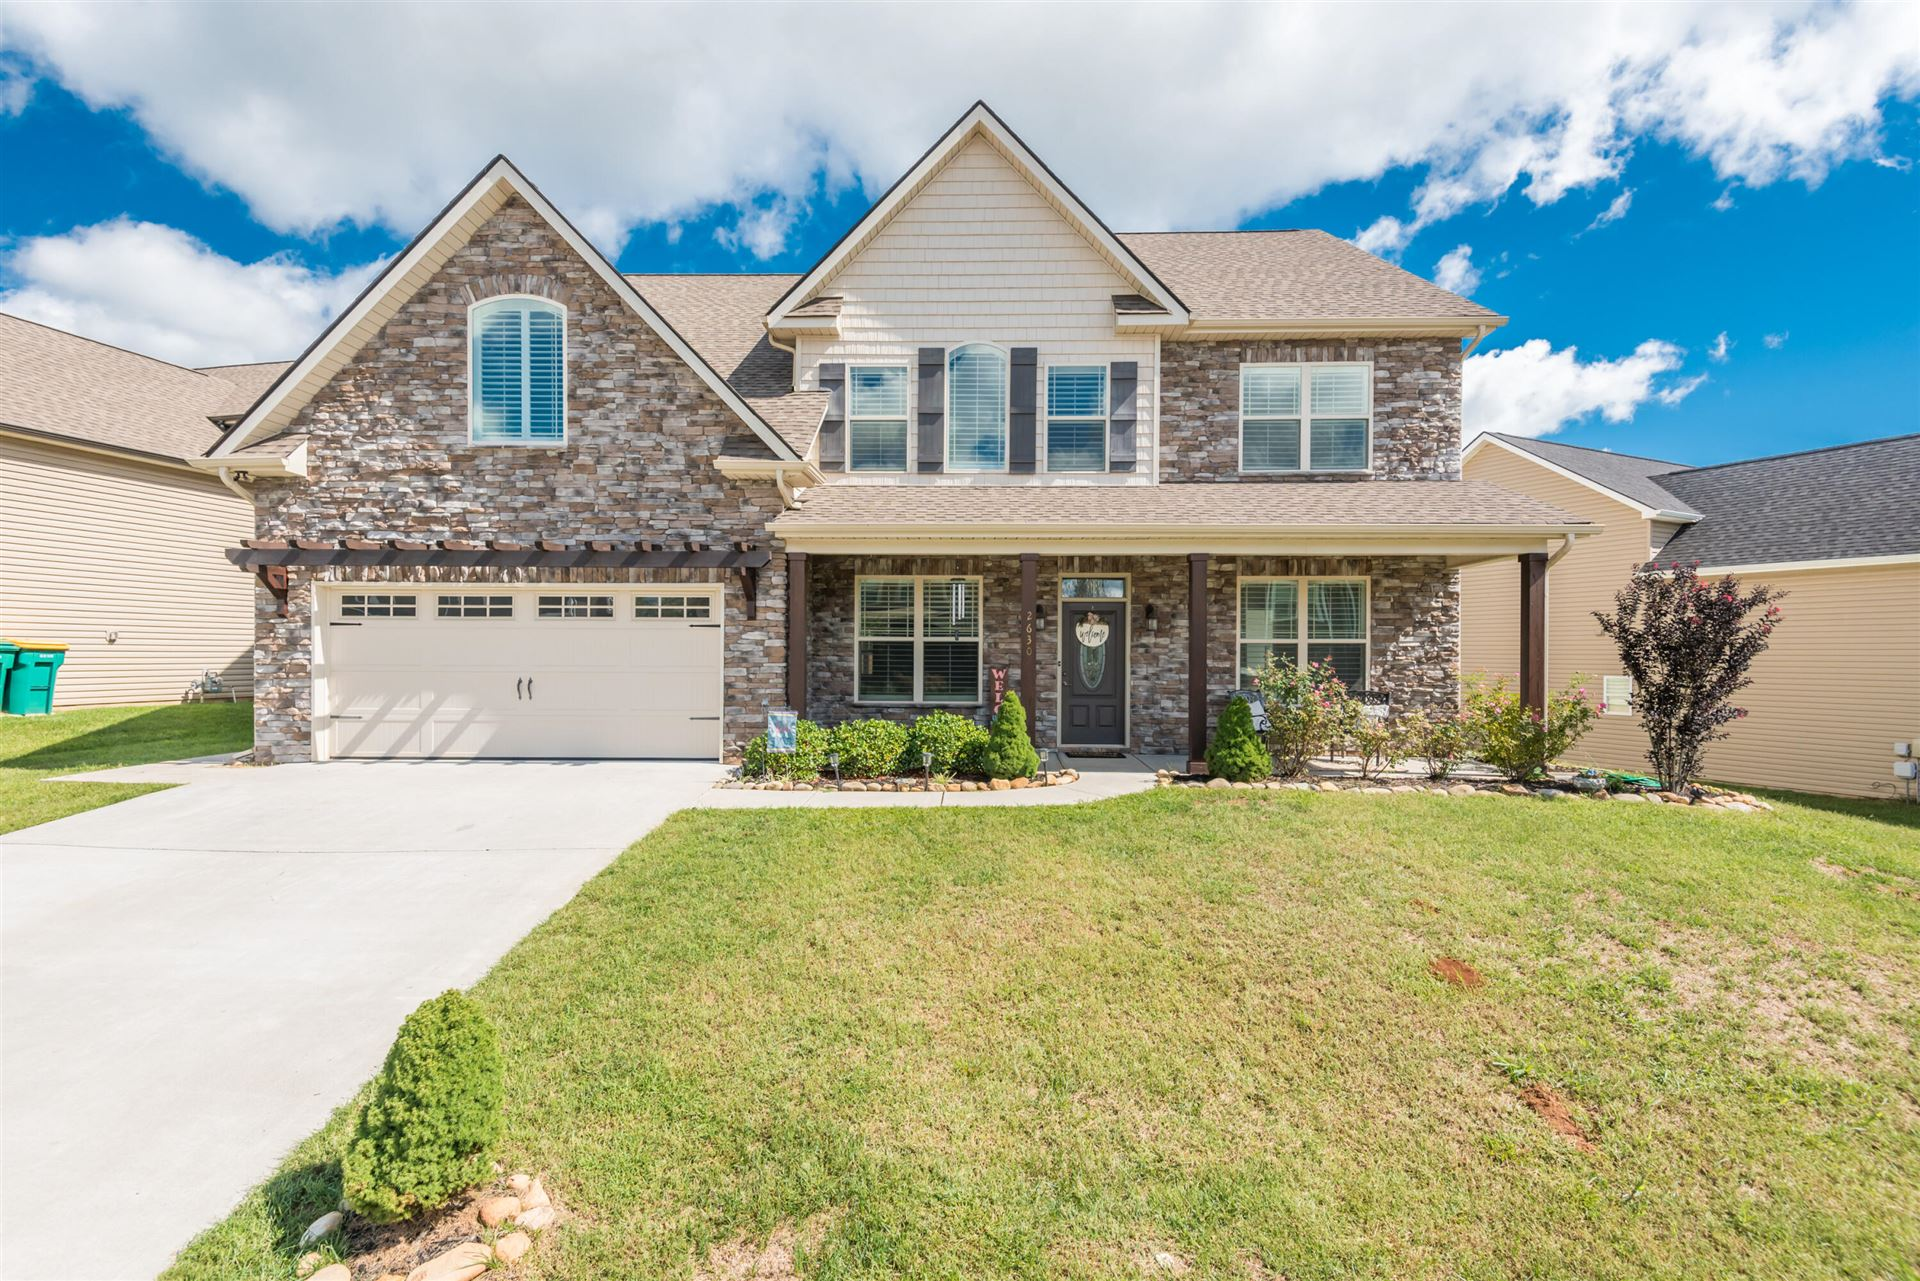 Photo of 2630 Brooke Willow Blvd, Knoxville, TN 37932 (MLS # 1168510)